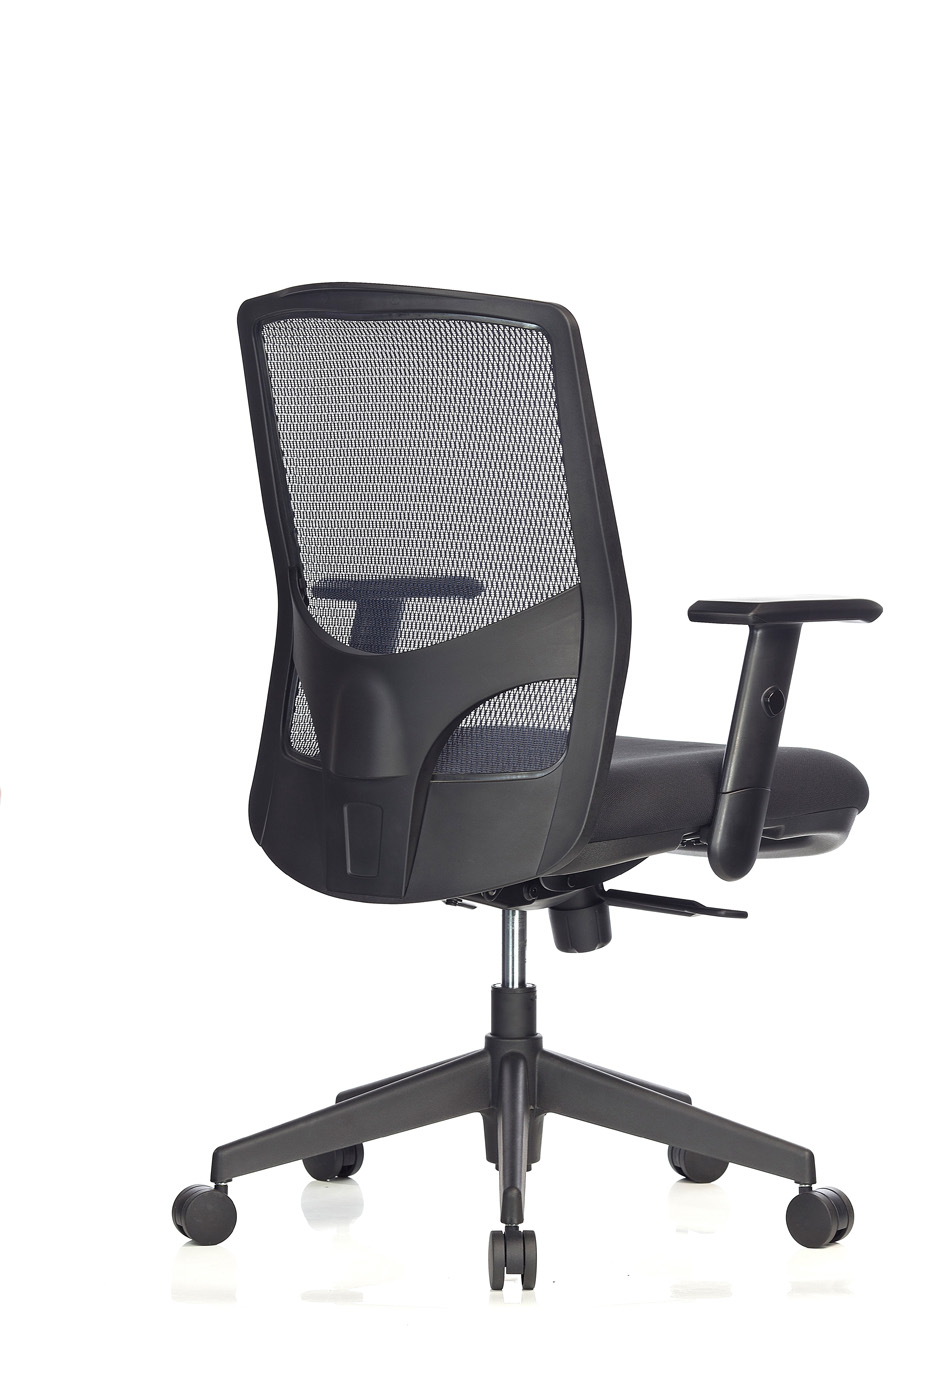 S-96MP office chair